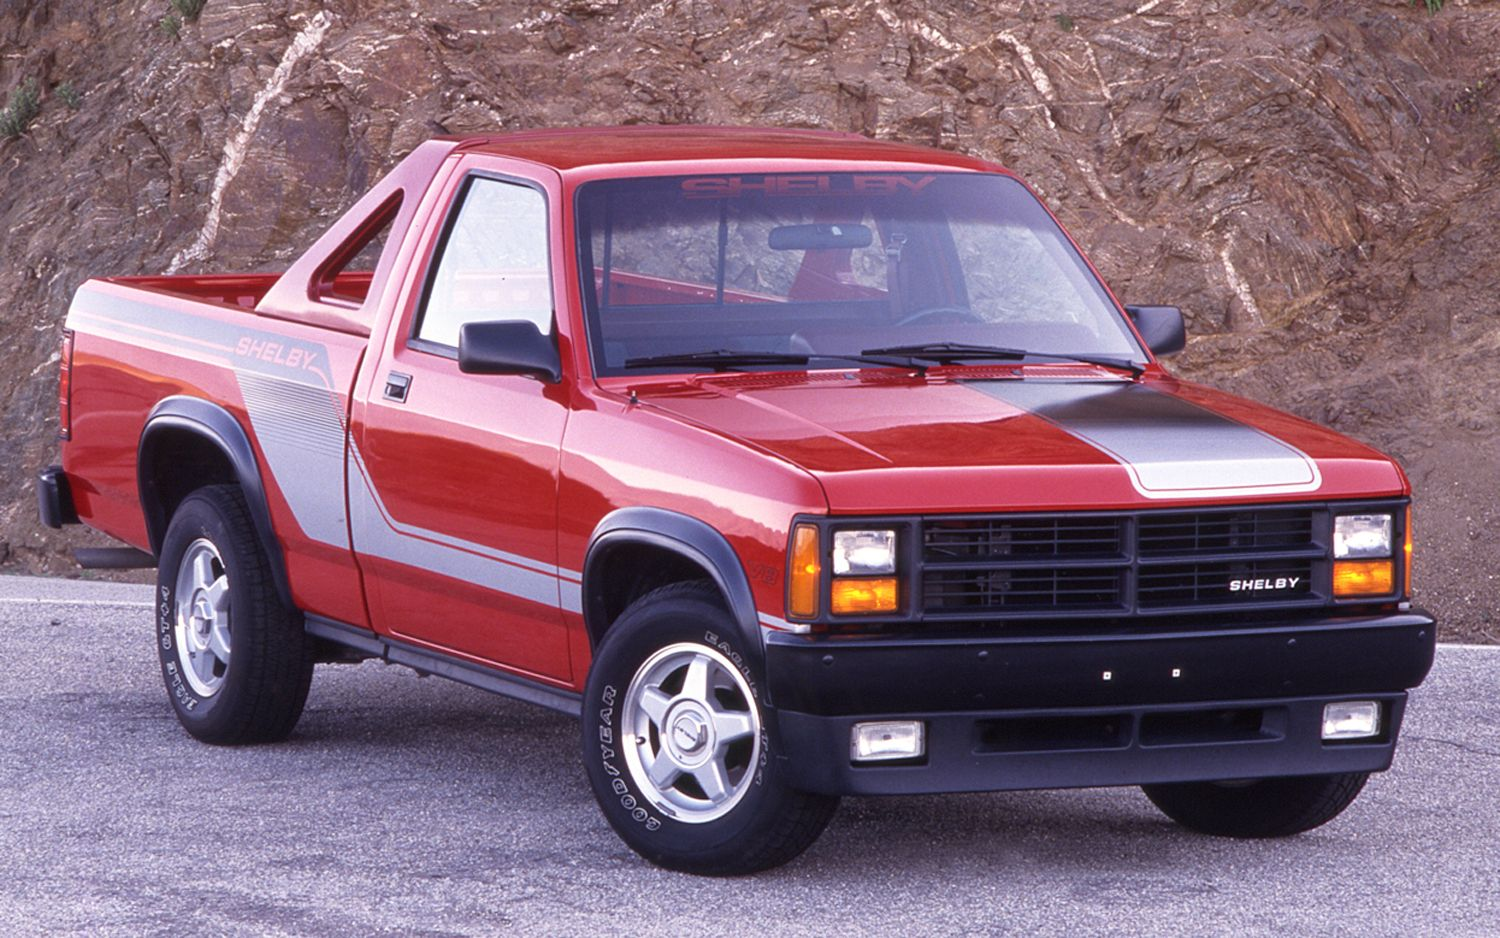 1989-dodge-dakota-shelby-front-view